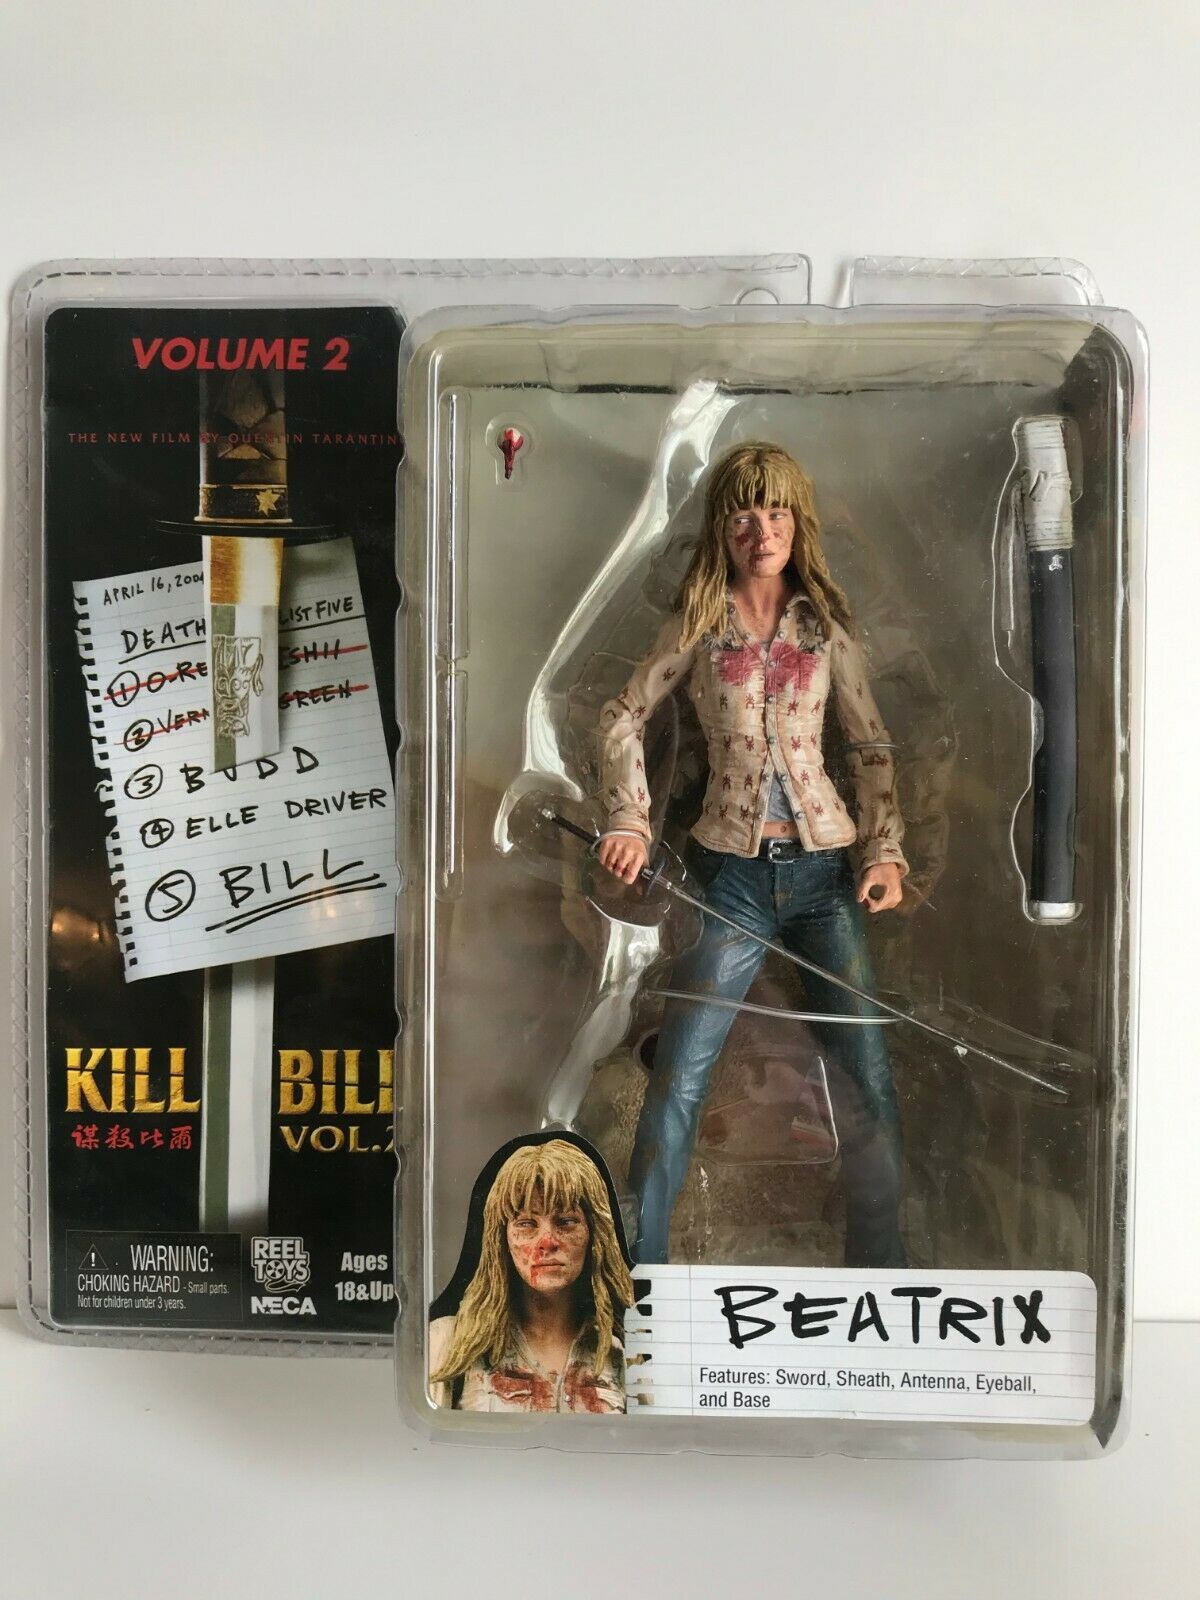 NECA KILL BILL volume 2 BEATRIX KIDDO action figure Tarantino reel toys NEW